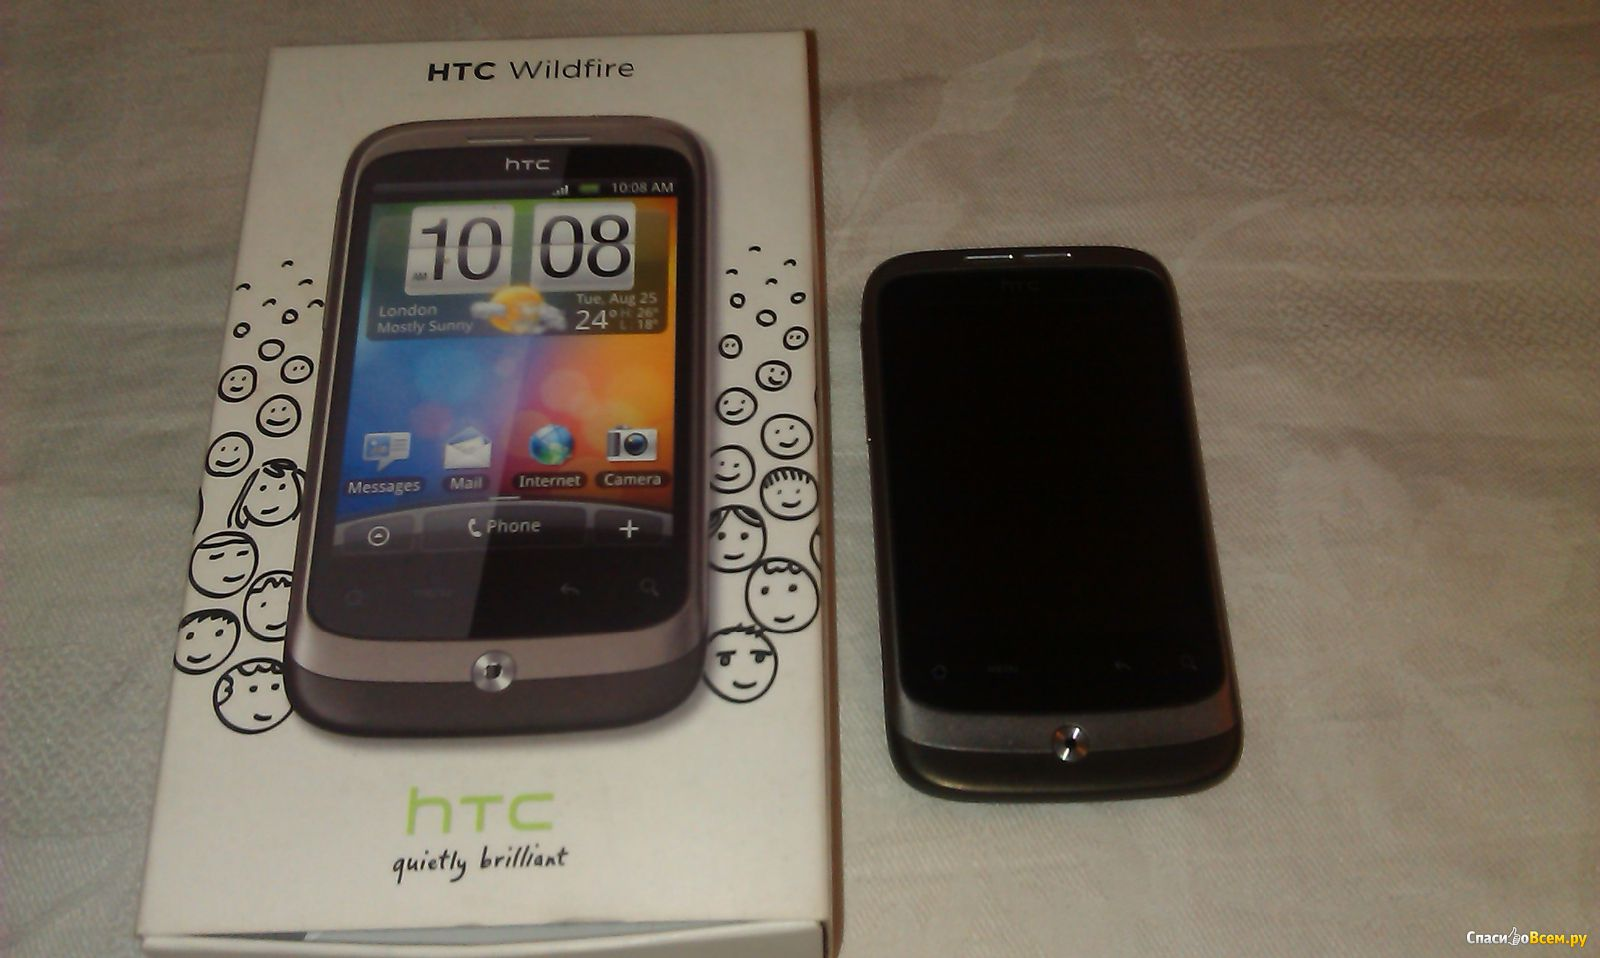 How to transfer photos from htc wildfire to computer